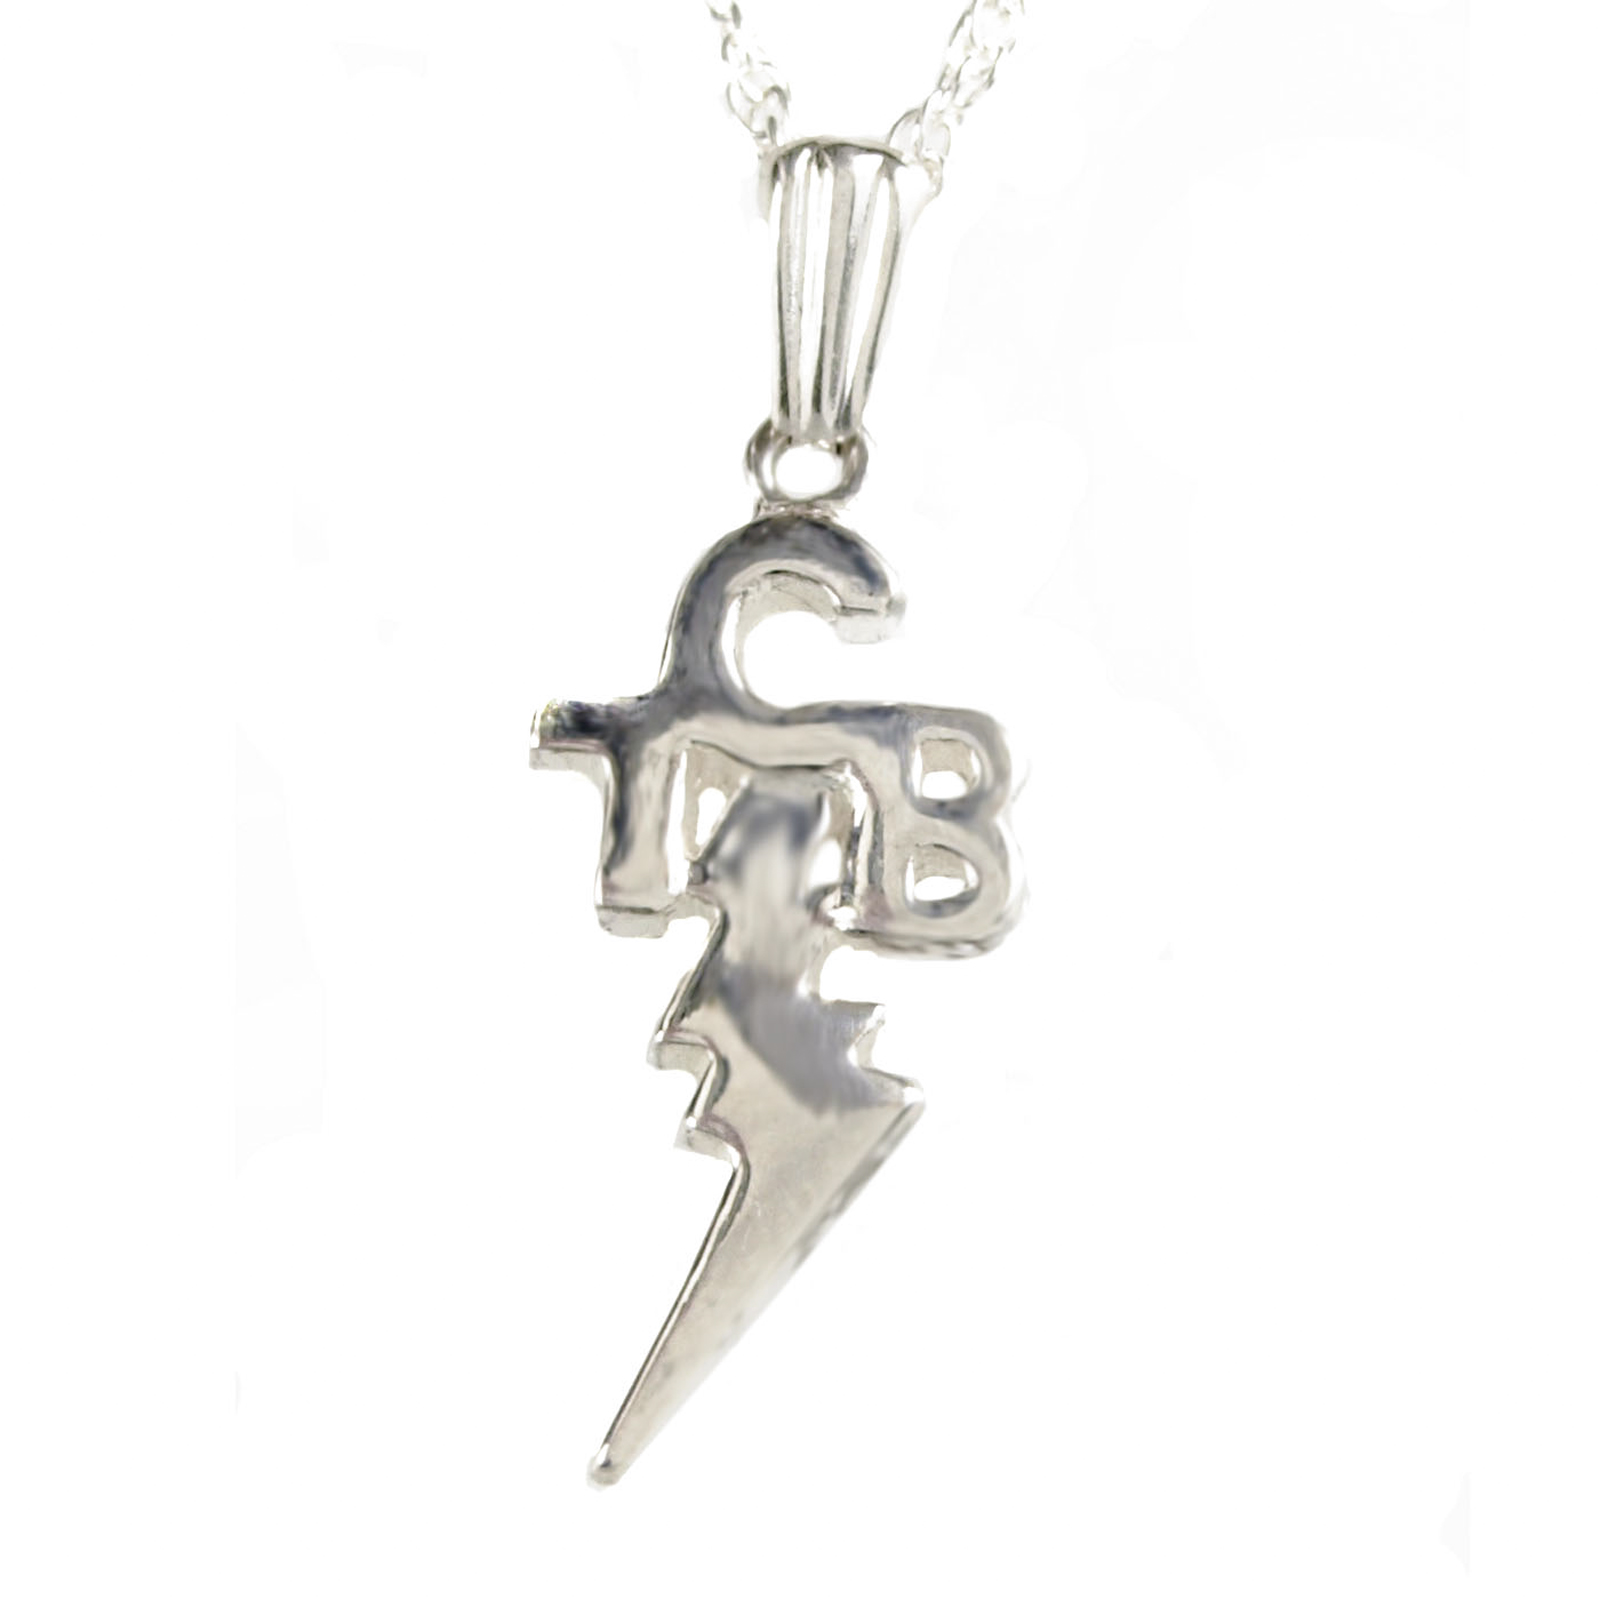 Elvis jewellery tcb pendant silver hometcb pendant silver mozeypictures Gallery